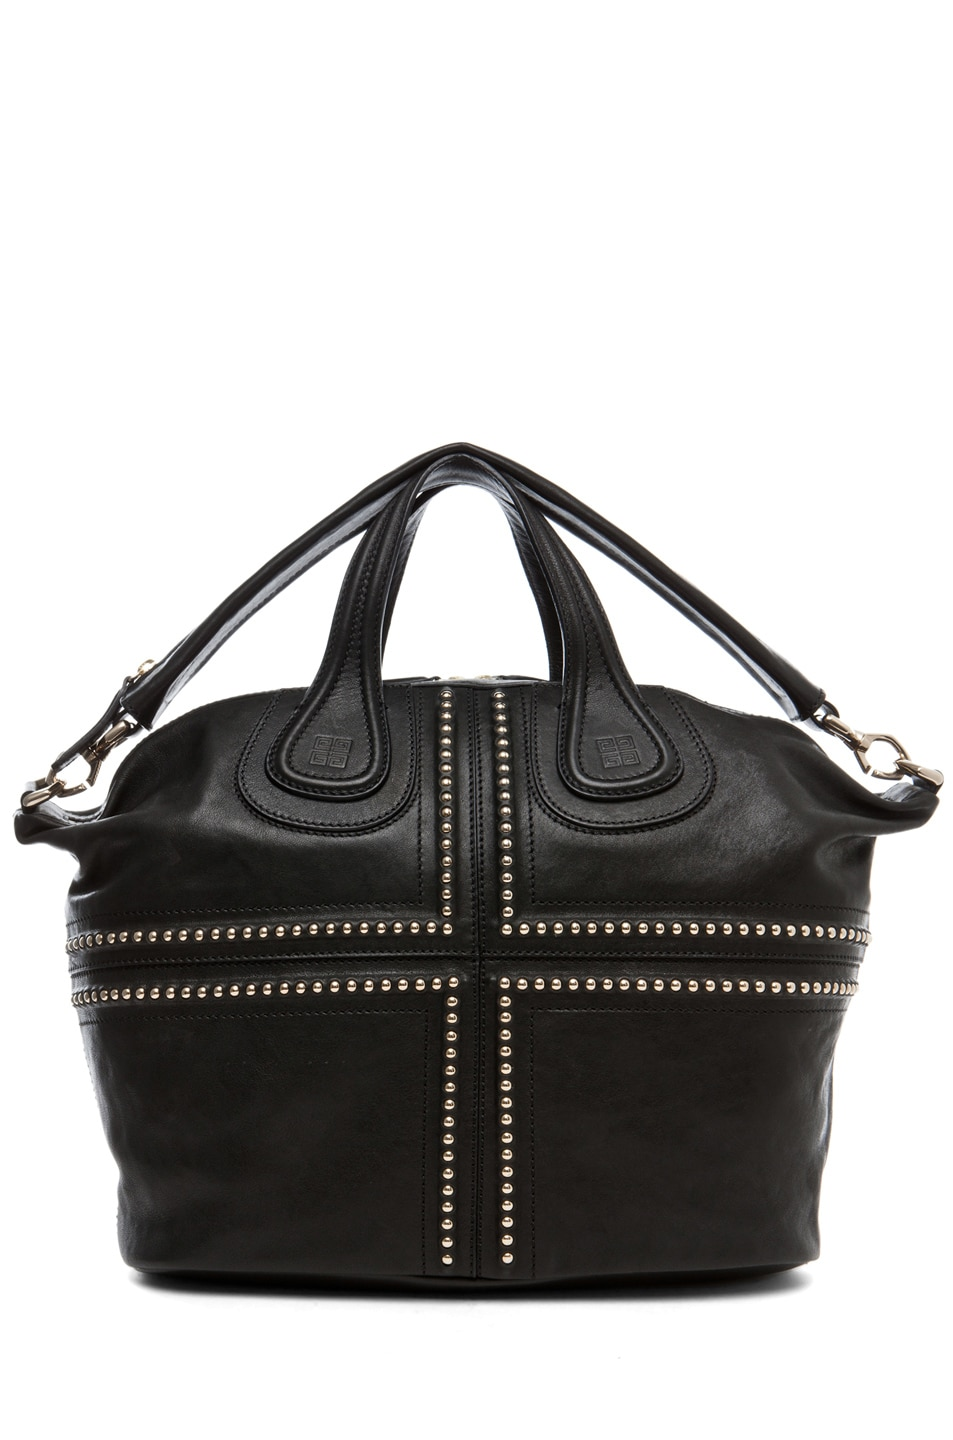 b94a82e0e5c8 Image 5 of Givenchy Nightingale Medium Studded in Black